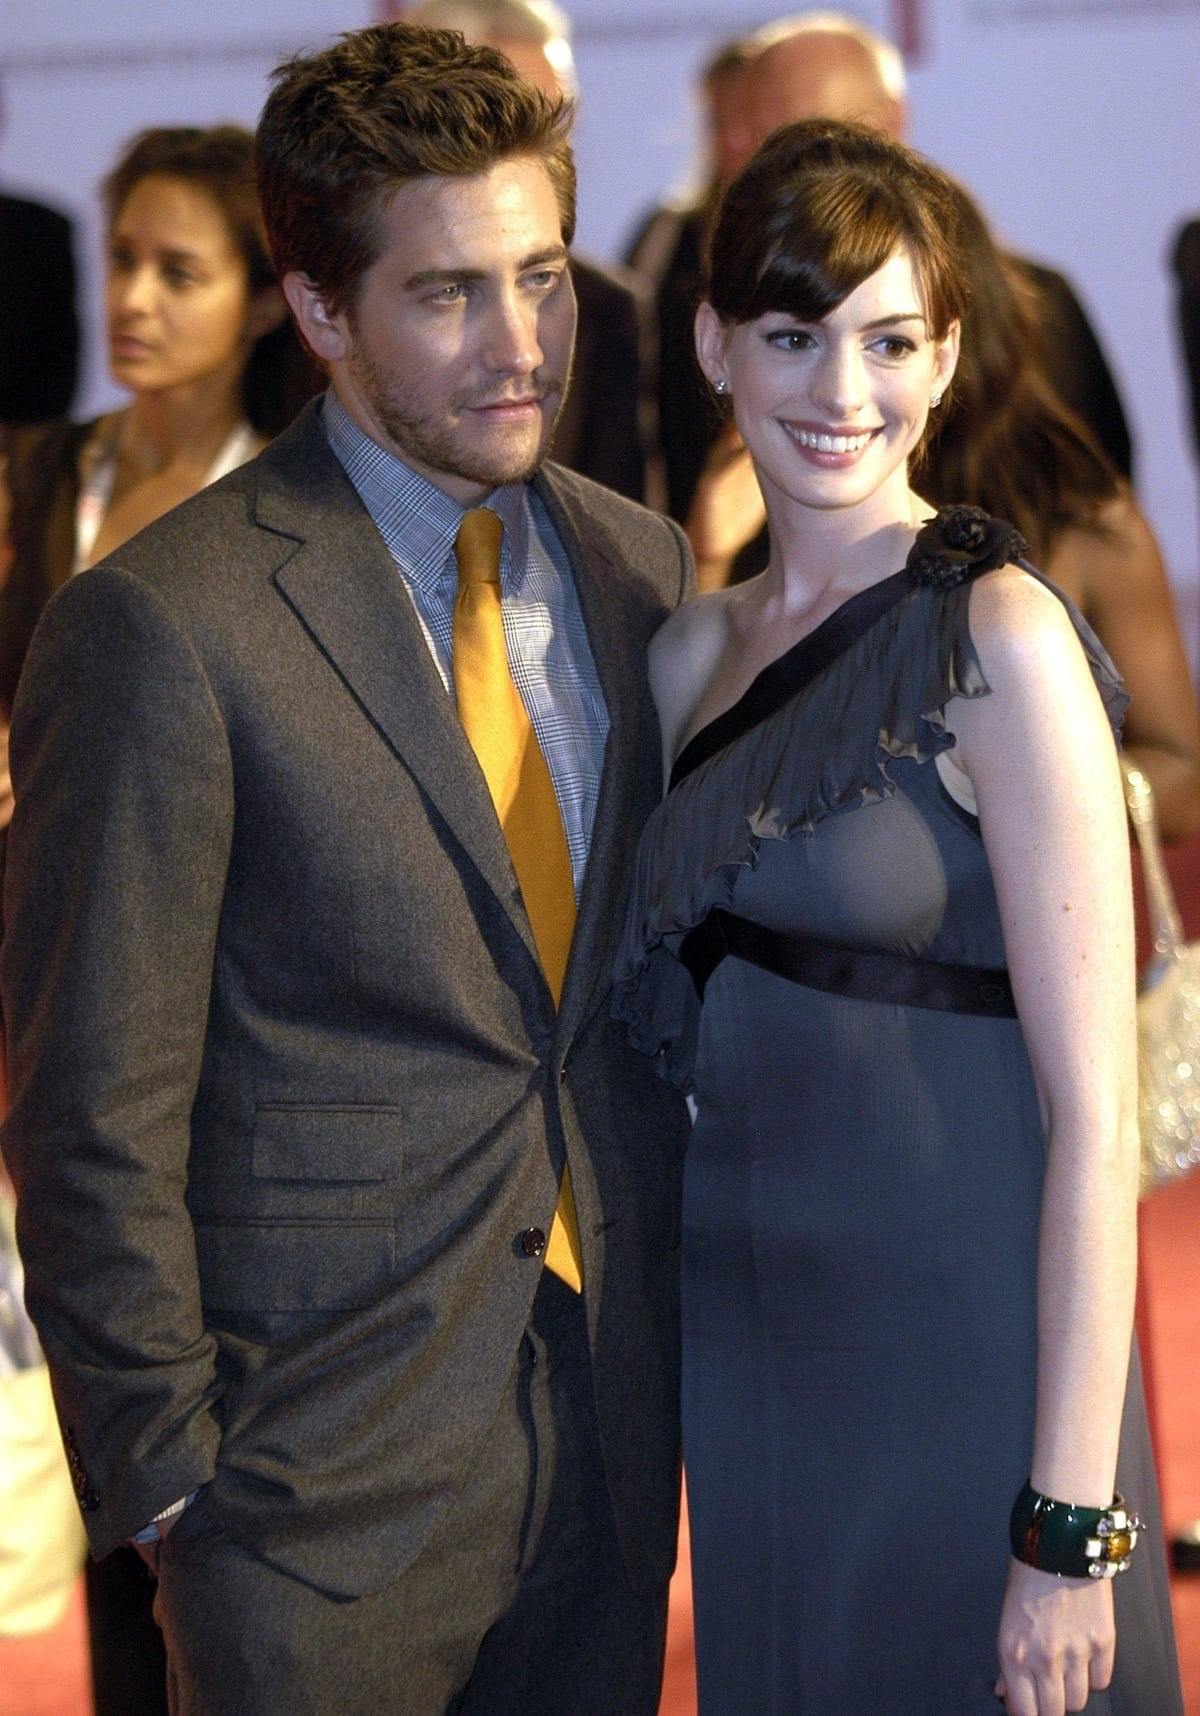 Anne Hathaway allowed Jake Gyllenhaal to touch her boobs when filming Brokeback Mountain